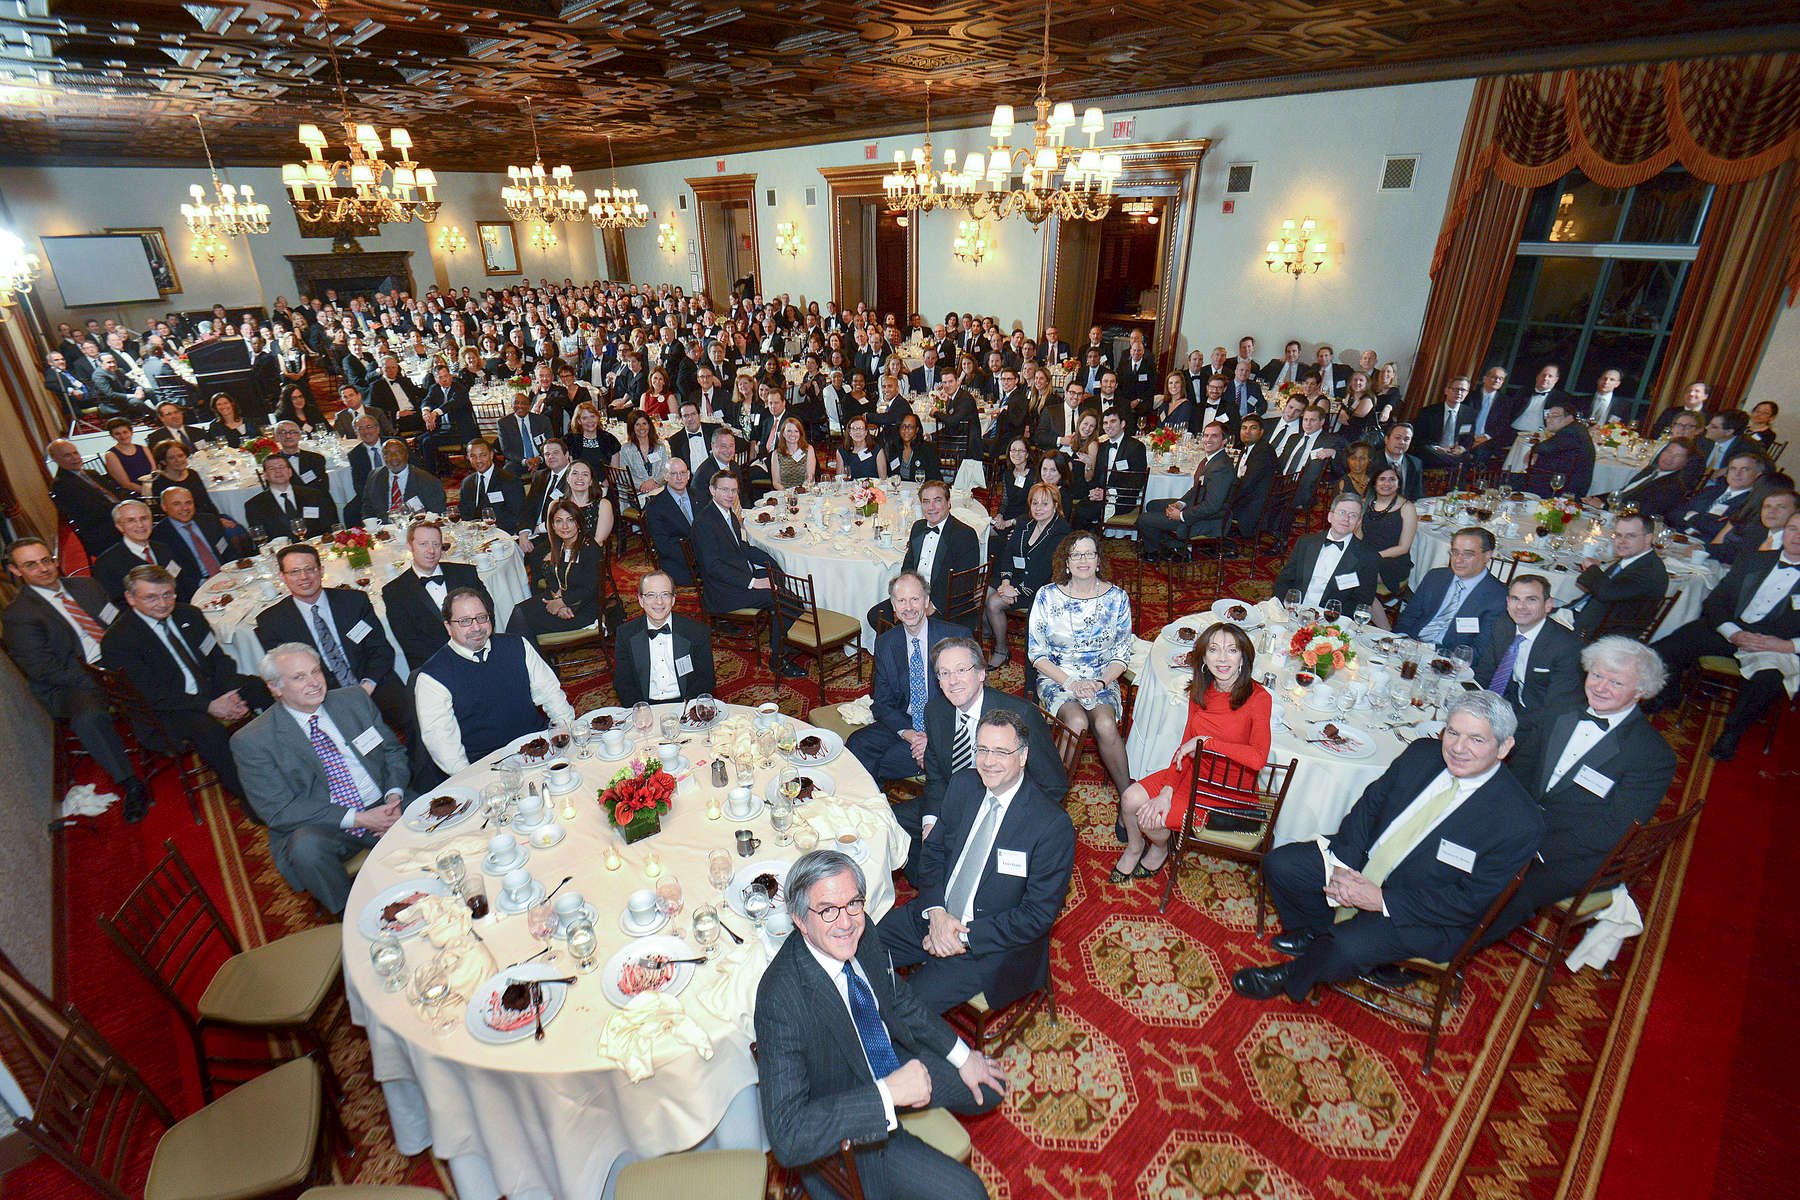 The Eastern District Association of current and former members of the U.S. Attorney's Office for the Eastern District of New York annual dinner.